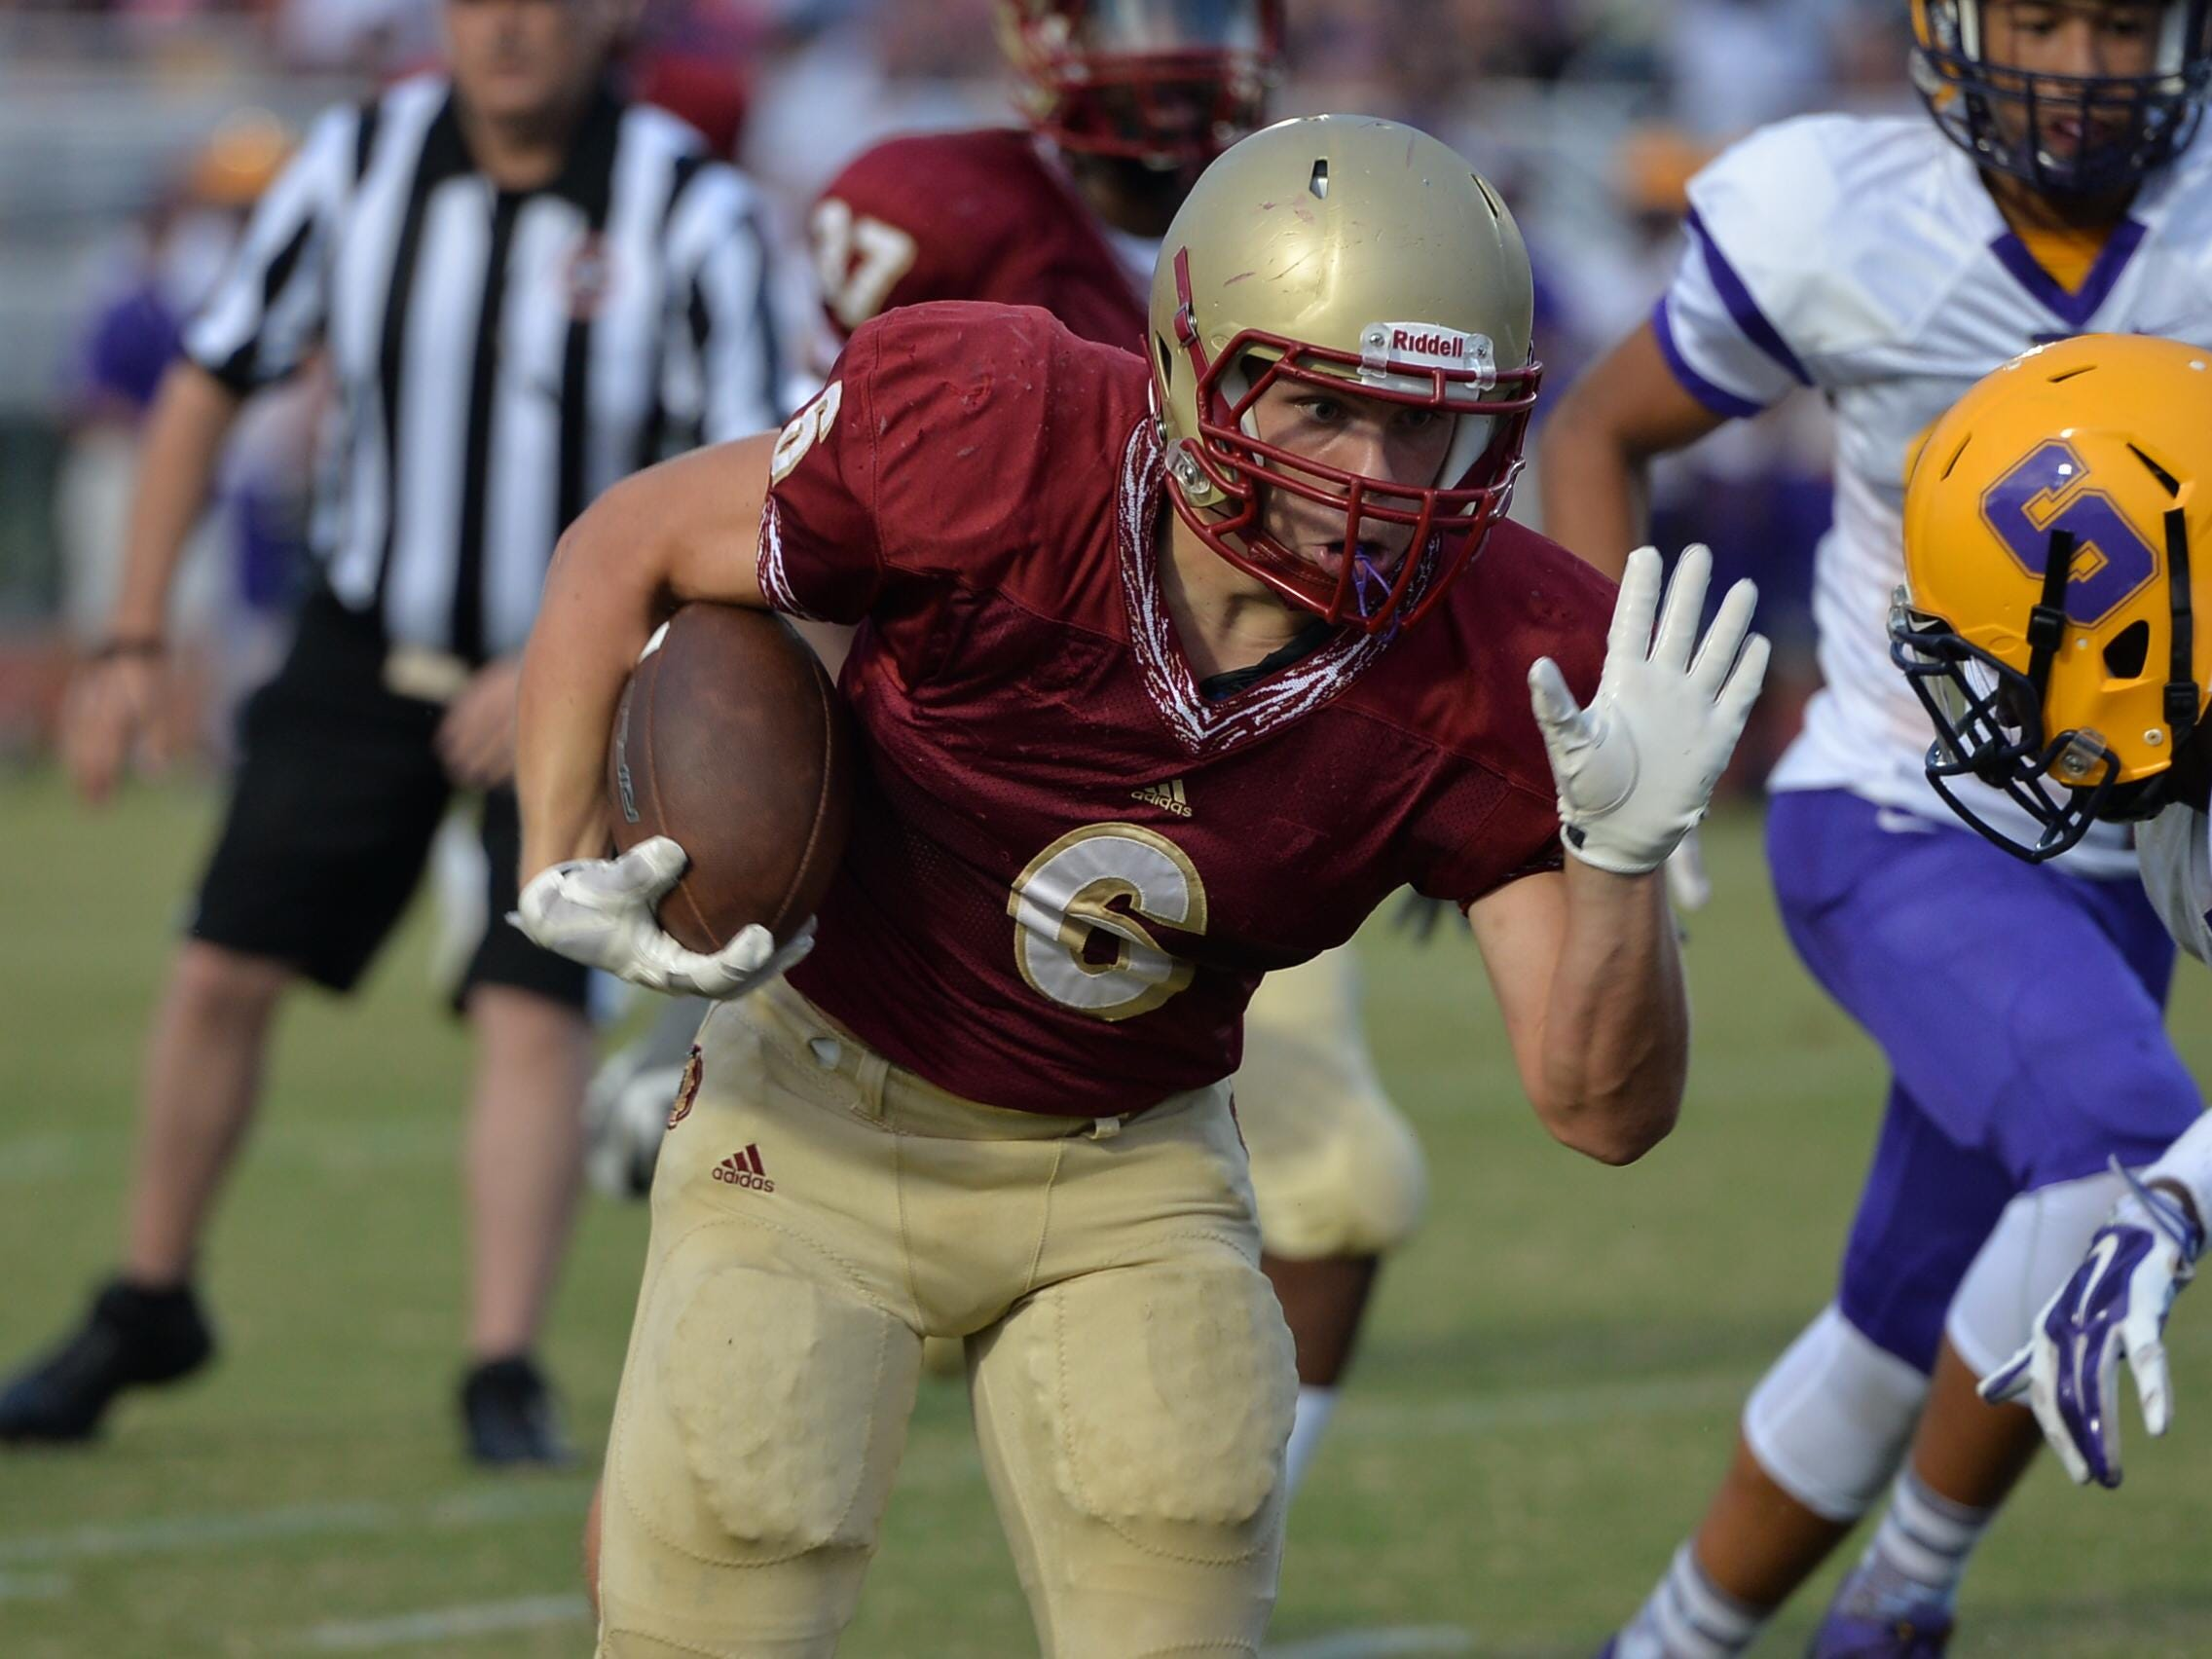 Riverdale's Austin Bryant is the Warriors' leading returning rusher from the 2014 season.